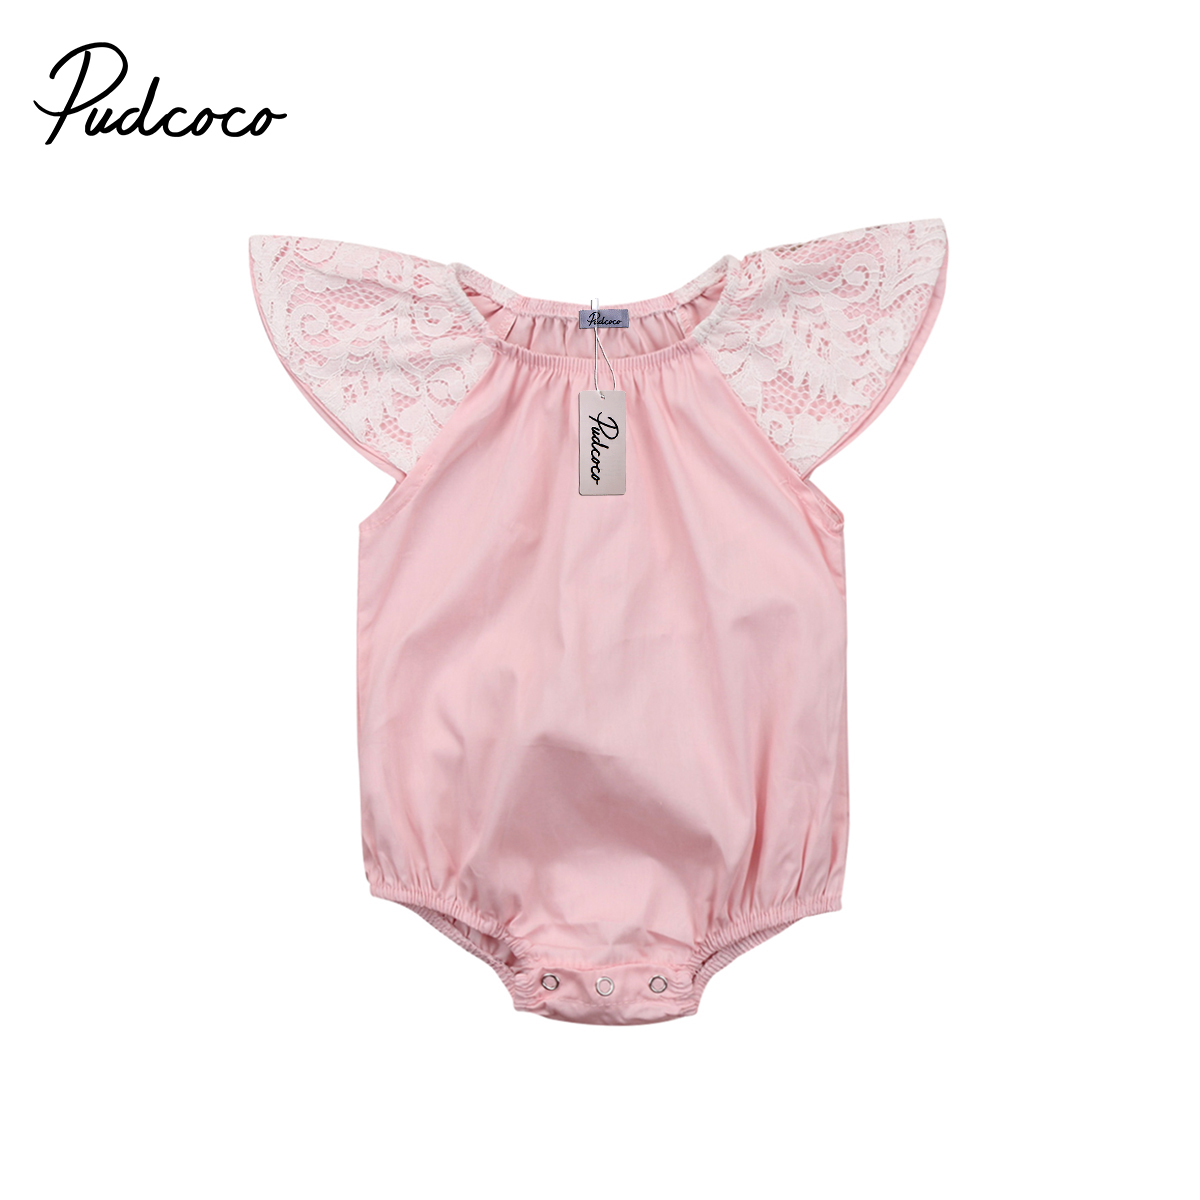 Pudcoco Toddler Baby Girls Lace Ruffle Romper Jumpsuit Jumper Outfits Sunsuit Summer Cotton One-pieces